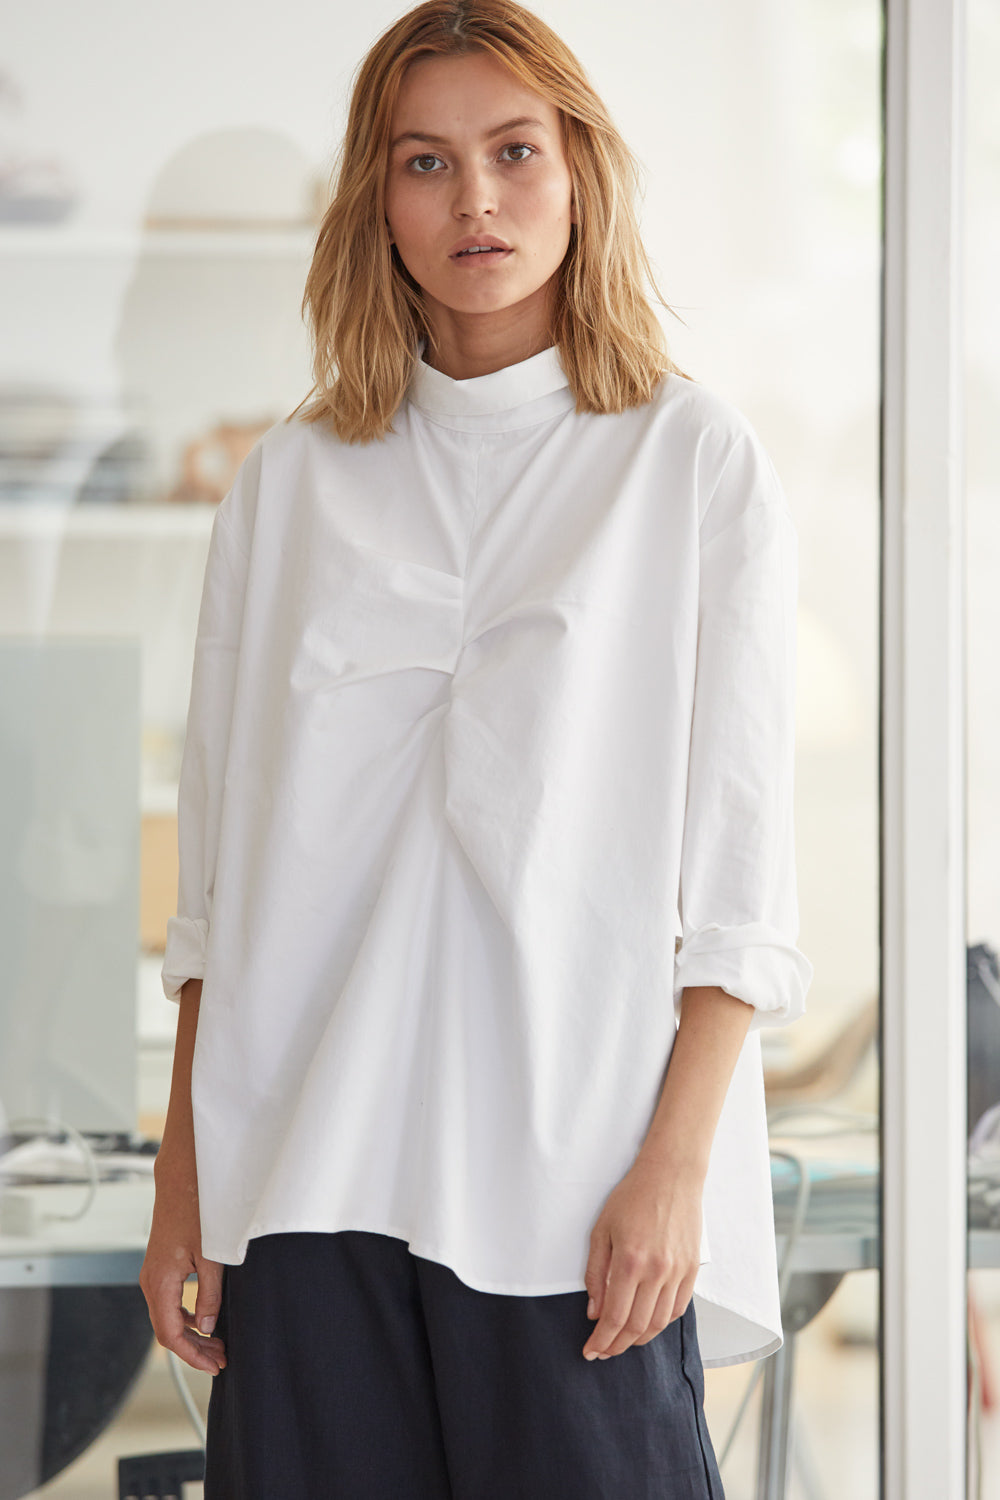 NZ Fashion Clothing Boutique gregorythelabel Gregory SS18 Clara Top Made in NZ